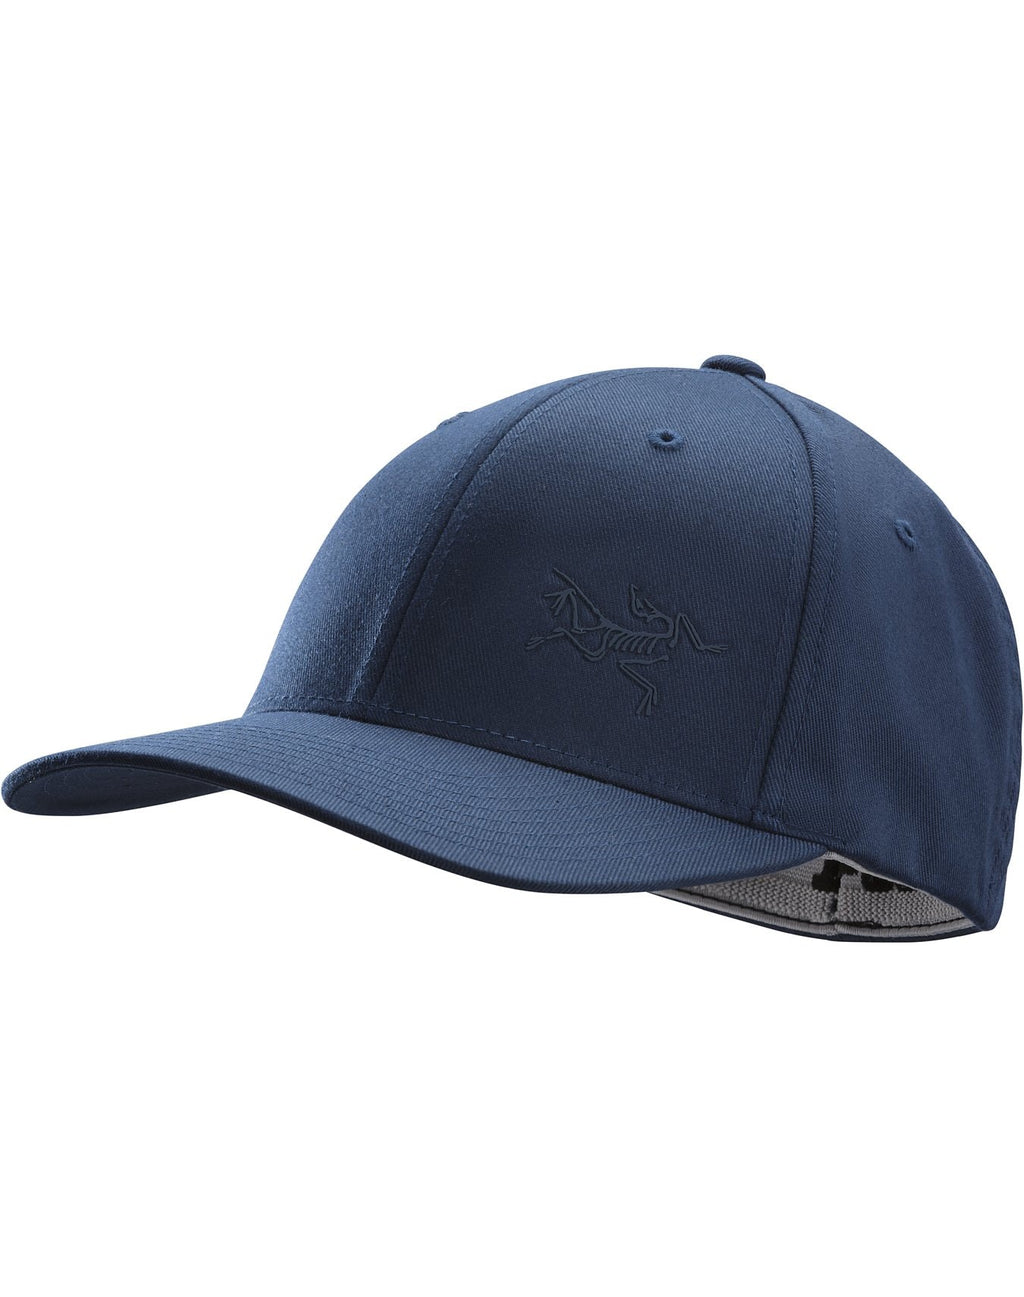 Arc'Teryx Bird Cap / Kingfisher - Trailside Outfitter